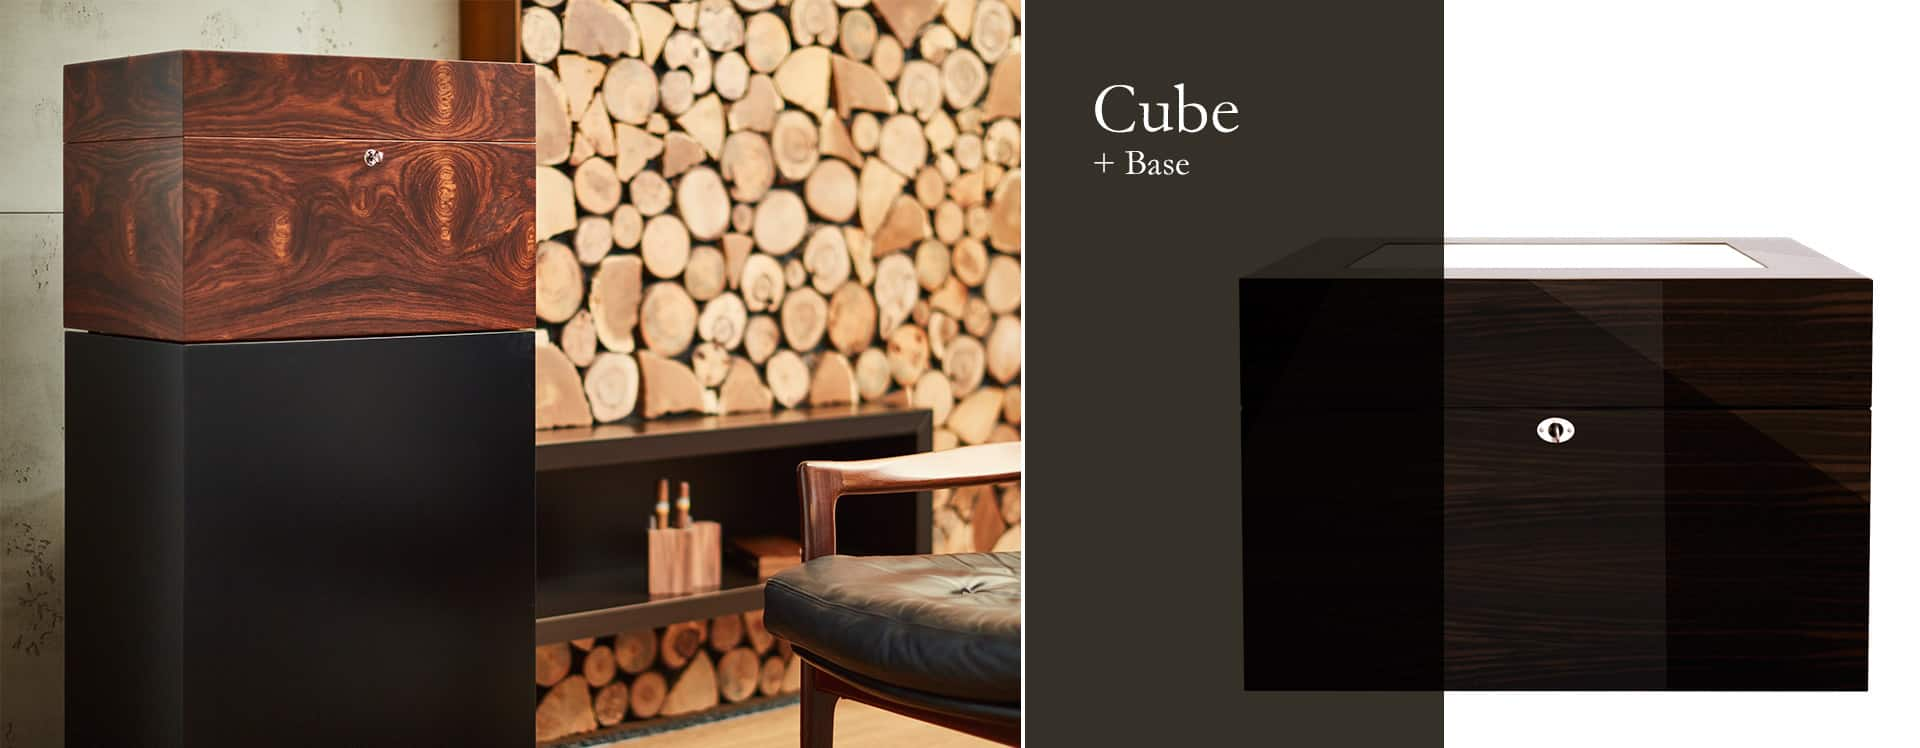 Cube and Base